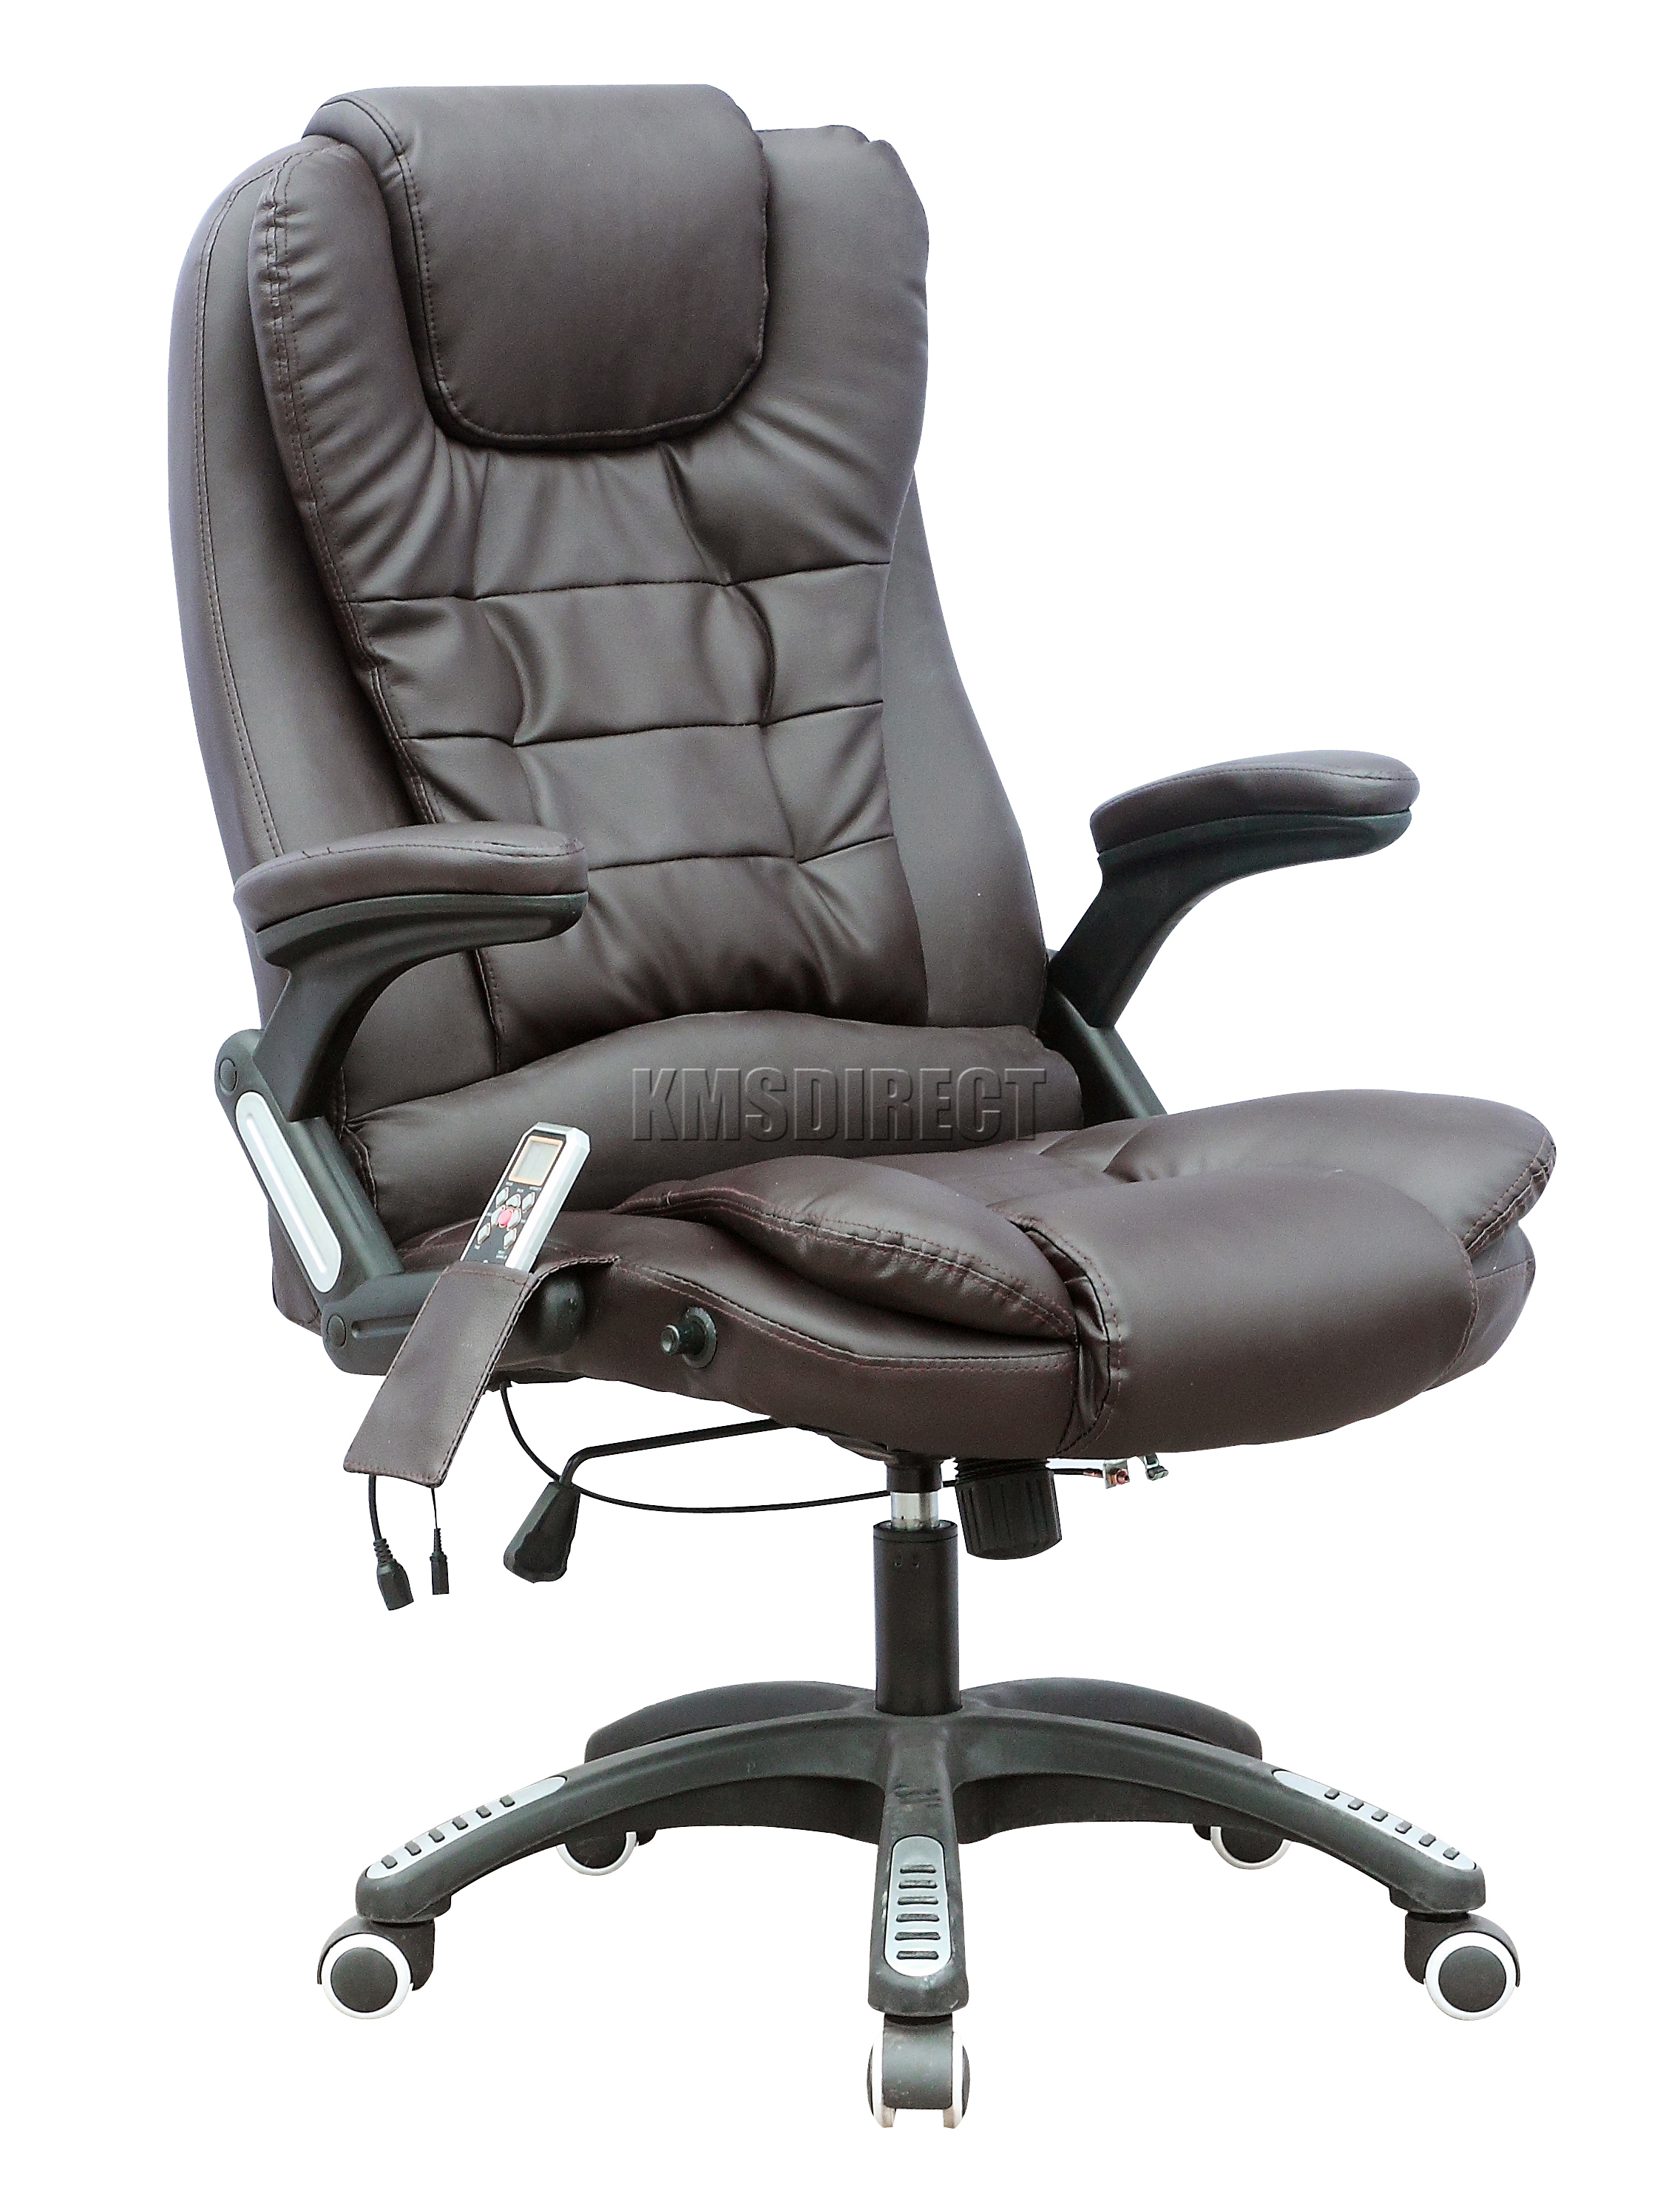 Reflexology Chair Foxhunter 6 Point Massage Office Computer Chair Luxury